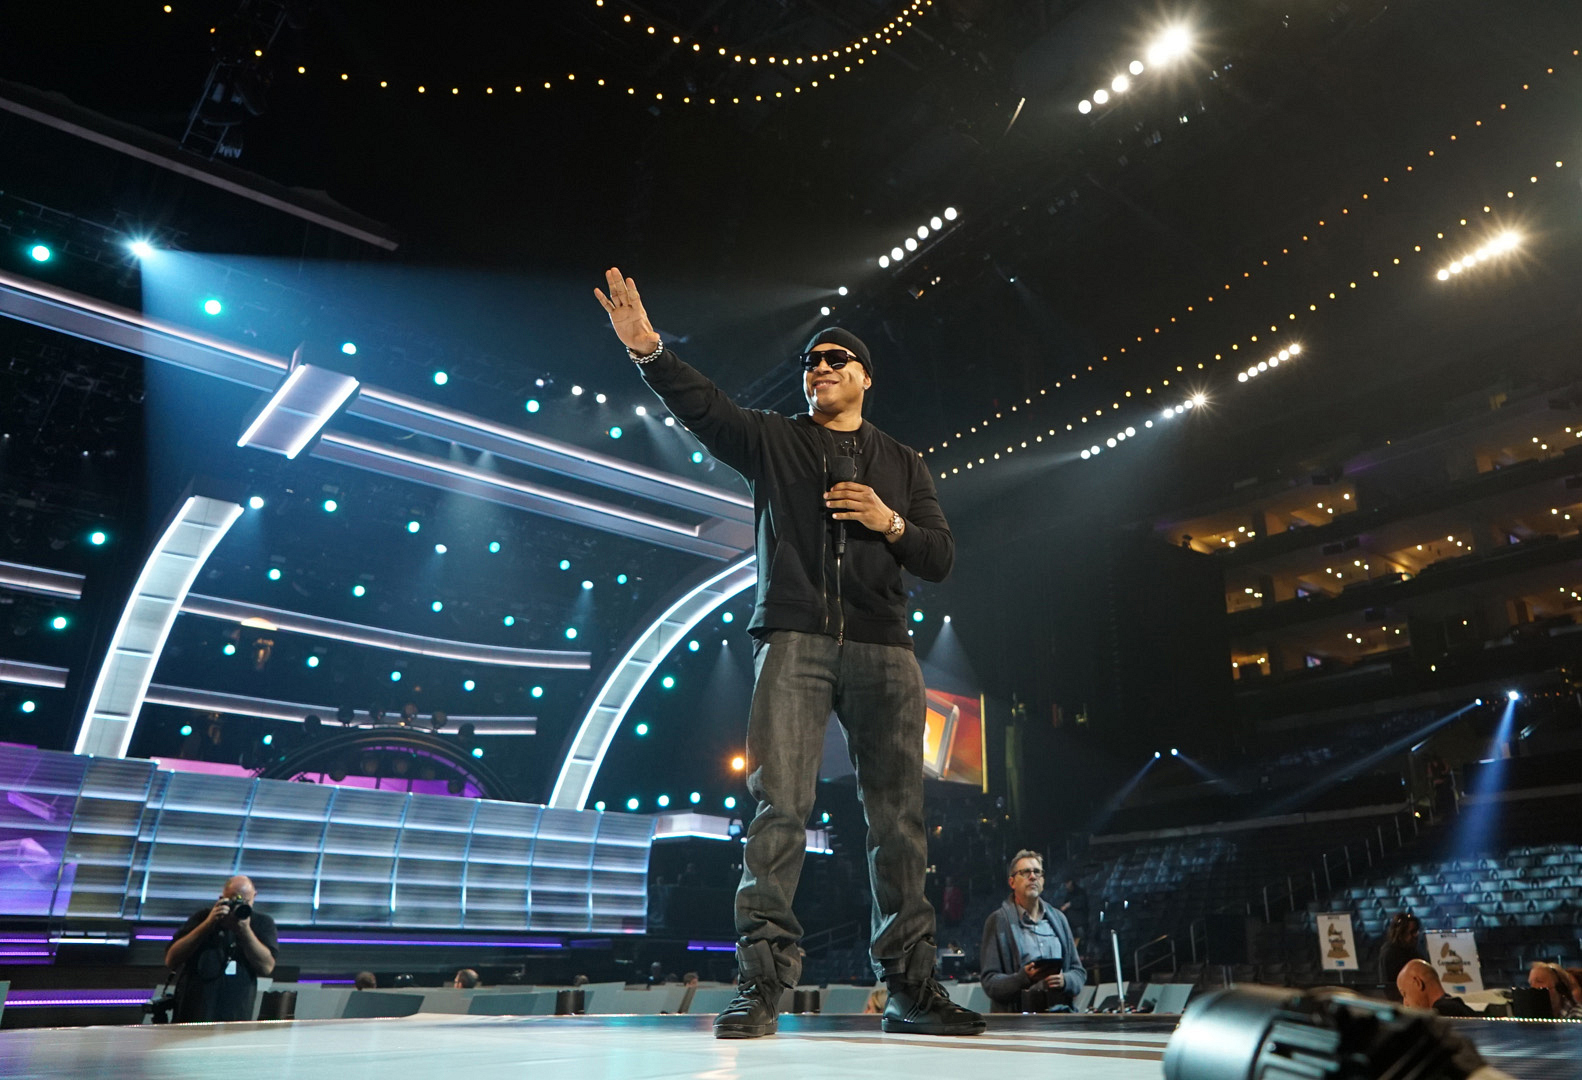 GRAMMYs host LL COOL J hits all his marks during a run through of the show.